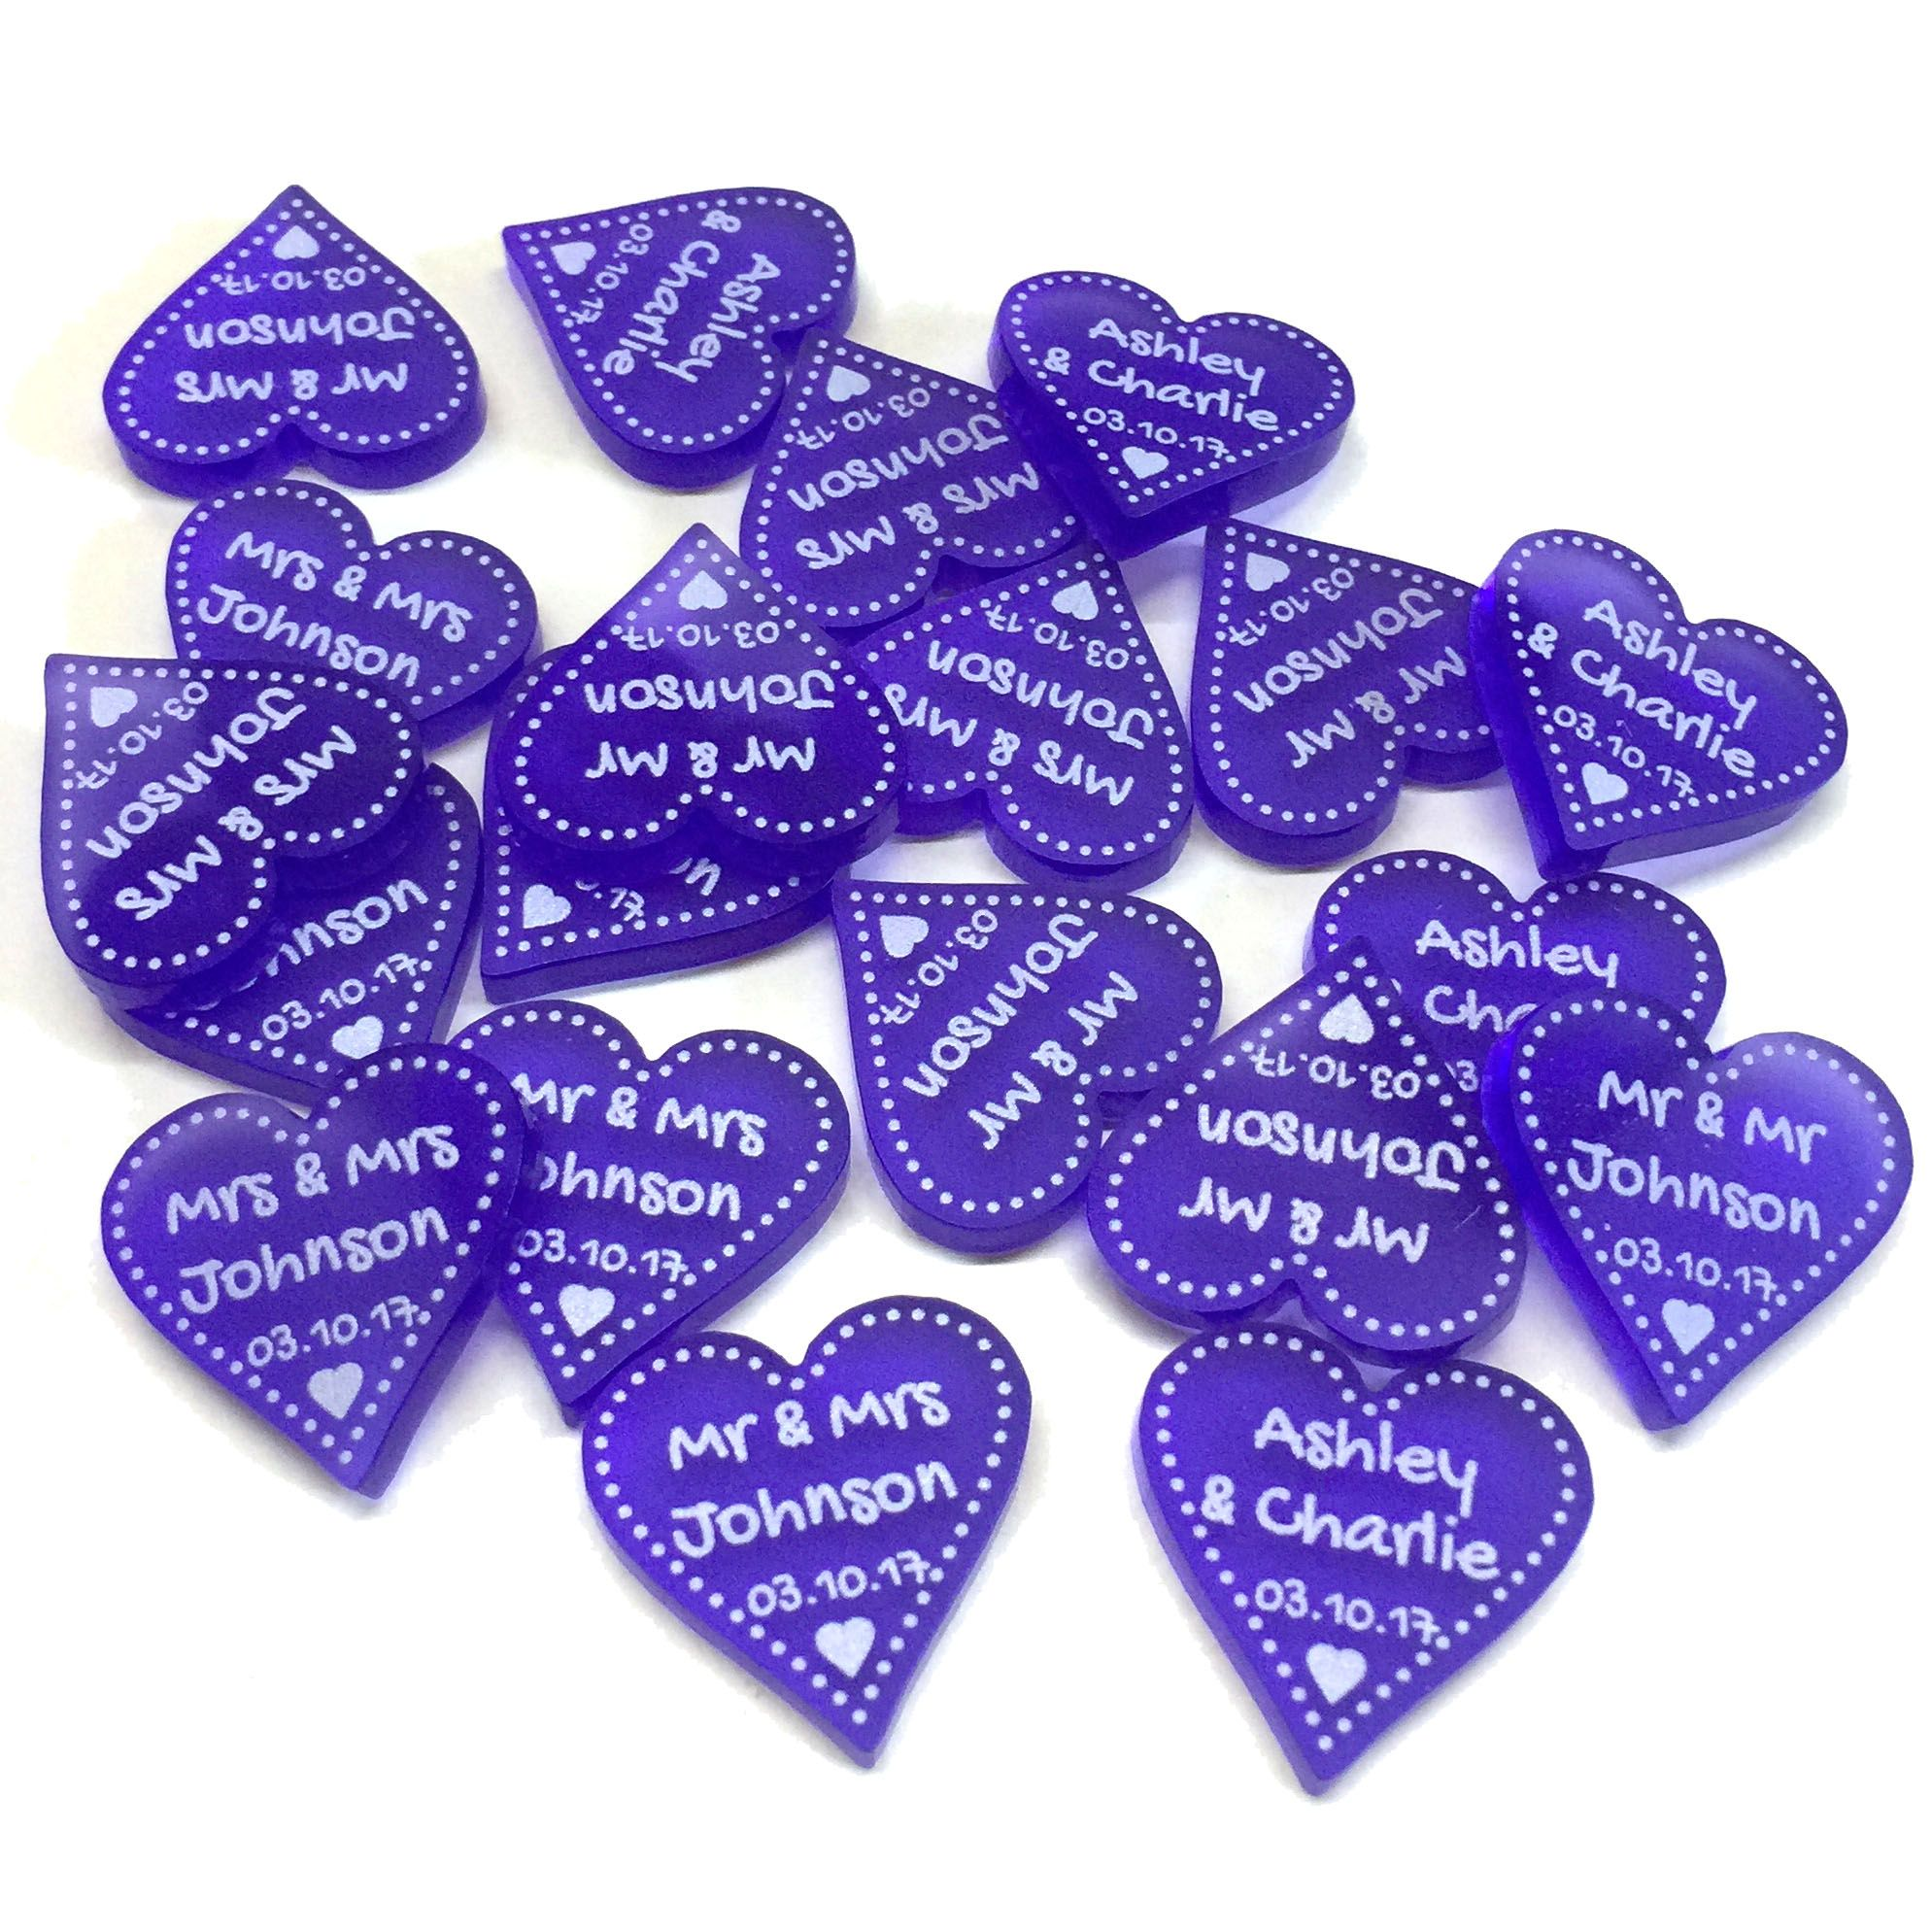 Personalised Love Hearts Wedding Favours Table Centrepiece Decorations Mr /& Mrs